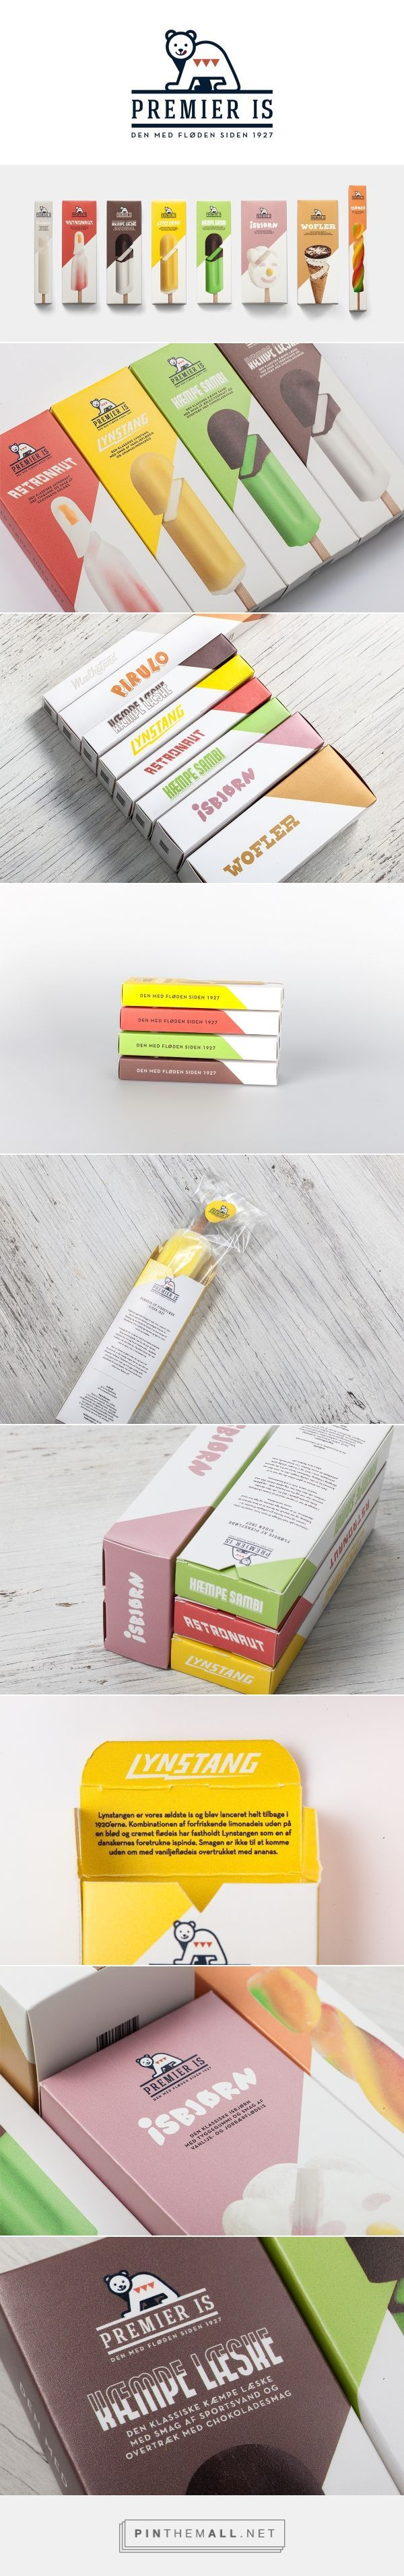 """Package design for ice cream company """"Premier Is"""" / School Project / Martin Klein:"""